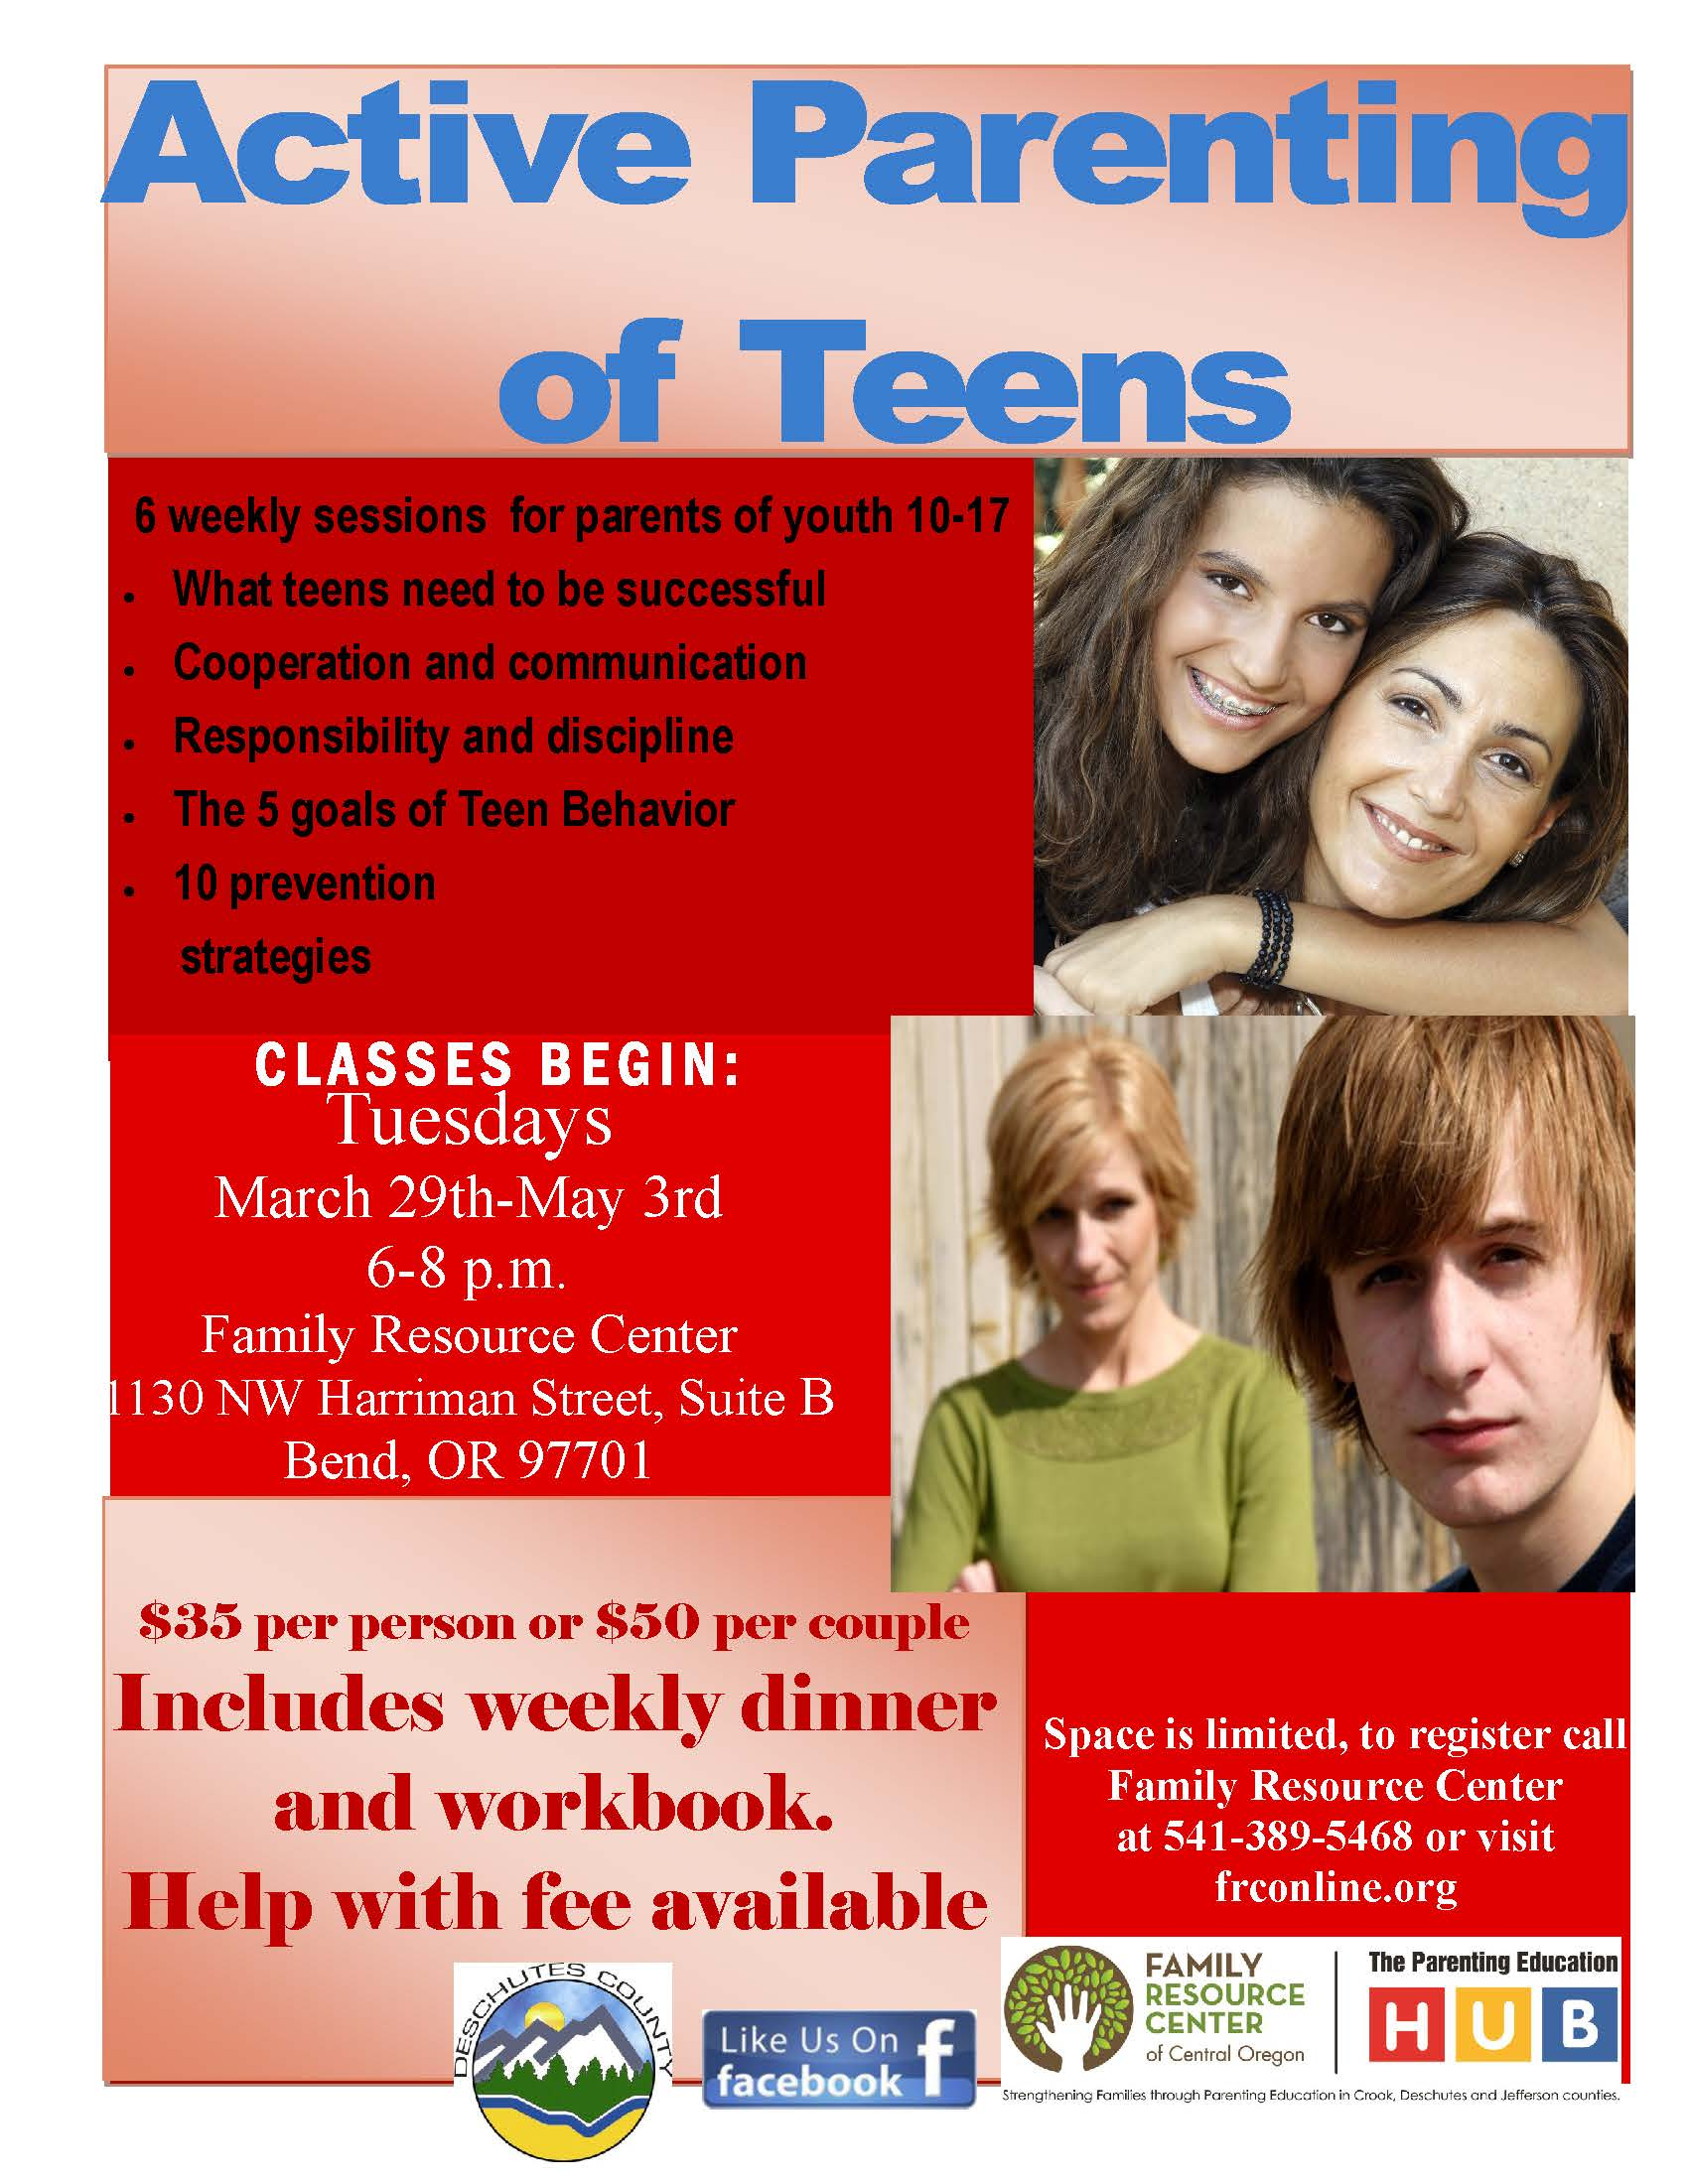 Active Parenting of Teens - Deschutes County